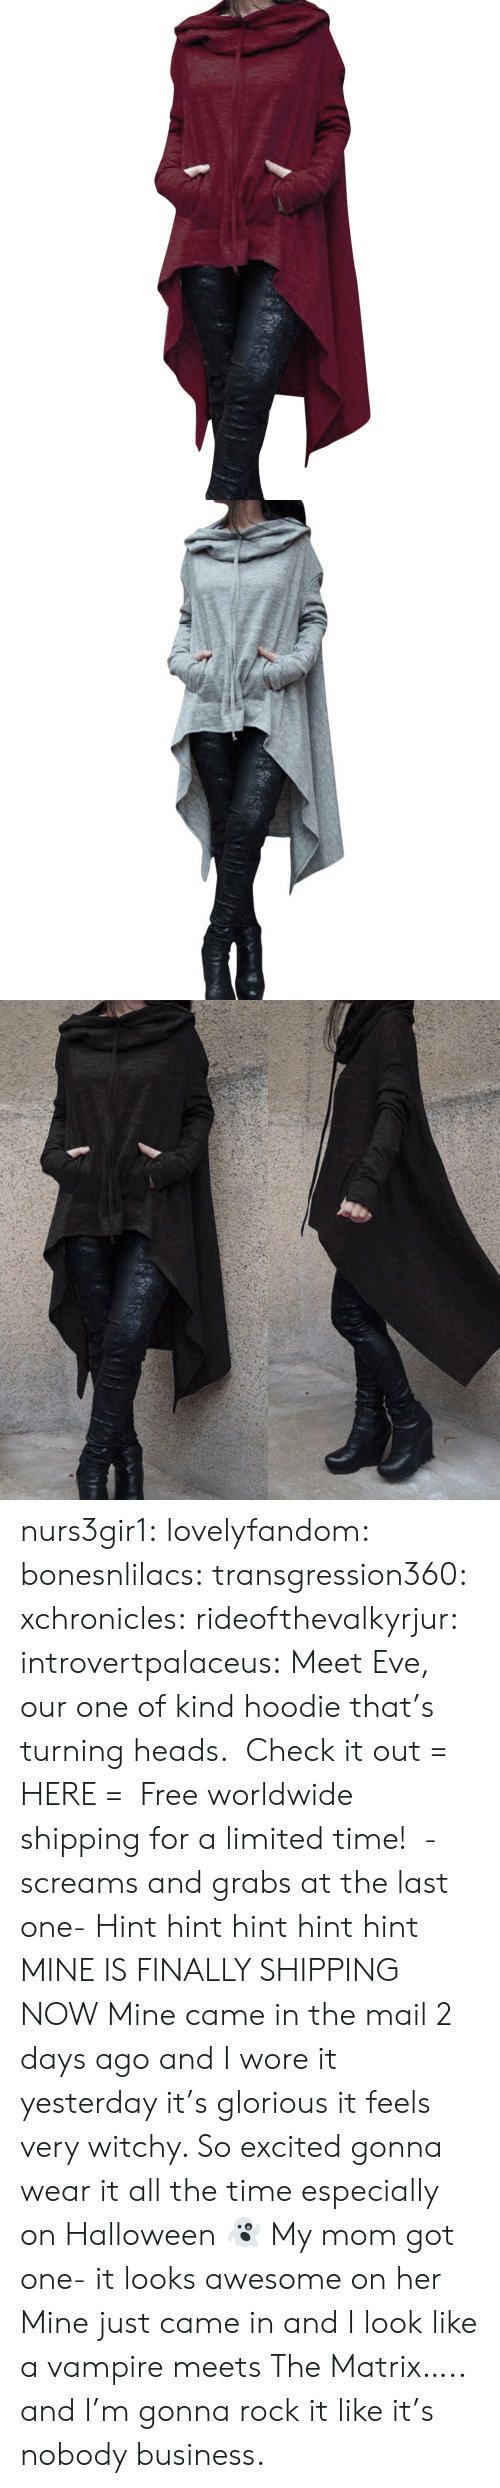 Halloween, Target, and The Matrix: nurs3gir1: lovelyfandom:  bonesnlilacs:  transgression360:  xchronicles:  rideofthevalkyrjur:  introvertpalaceus:  Meet Eve, our one of kind hoodie that's turning heads. Check it out = HERE = Free worldwide shipping for a limited time!   -screams and grabs at the last one-  Hint hint hint hint hint   MINE IS FINALLY SHIPPING NOW   Mine came in the mail 2 days ago and I wore it yesterday it's glorious it feels very witchy. So excited gonna wear it all the time especially on Halloween 👻   My mom got one- it looks awesome on her   Mine just came in and I look like a vampire meets The Matrix….. and I'm gonna rock it like it's nobody business.